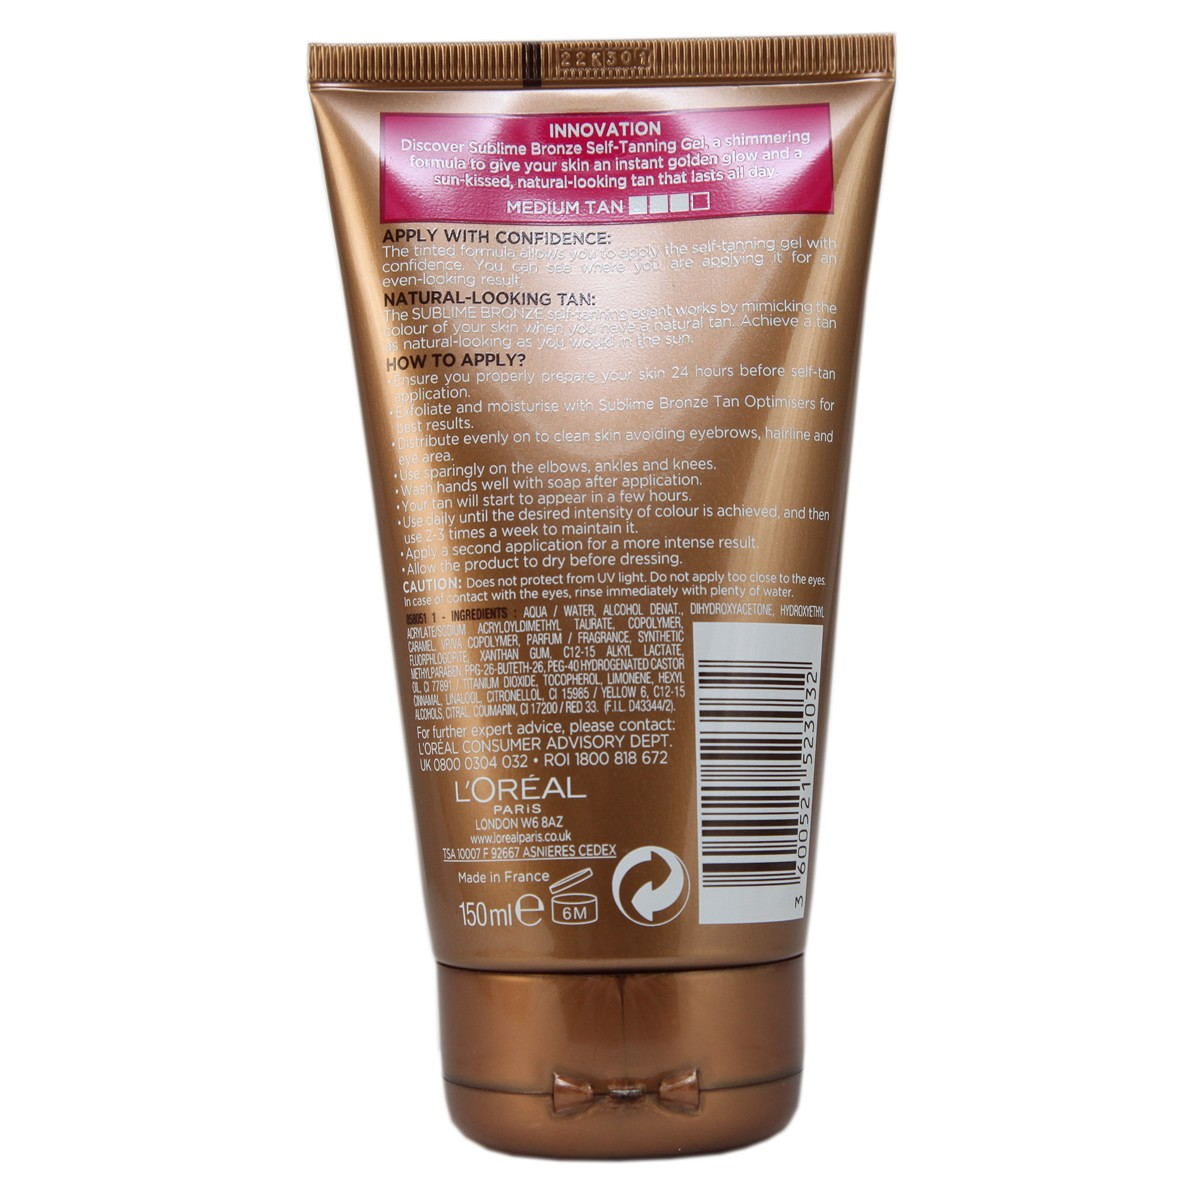 L'Oreal Paris Sublime Bronze Self-Tanning Tinted & Shimmering Gel for Body - Medium Skin